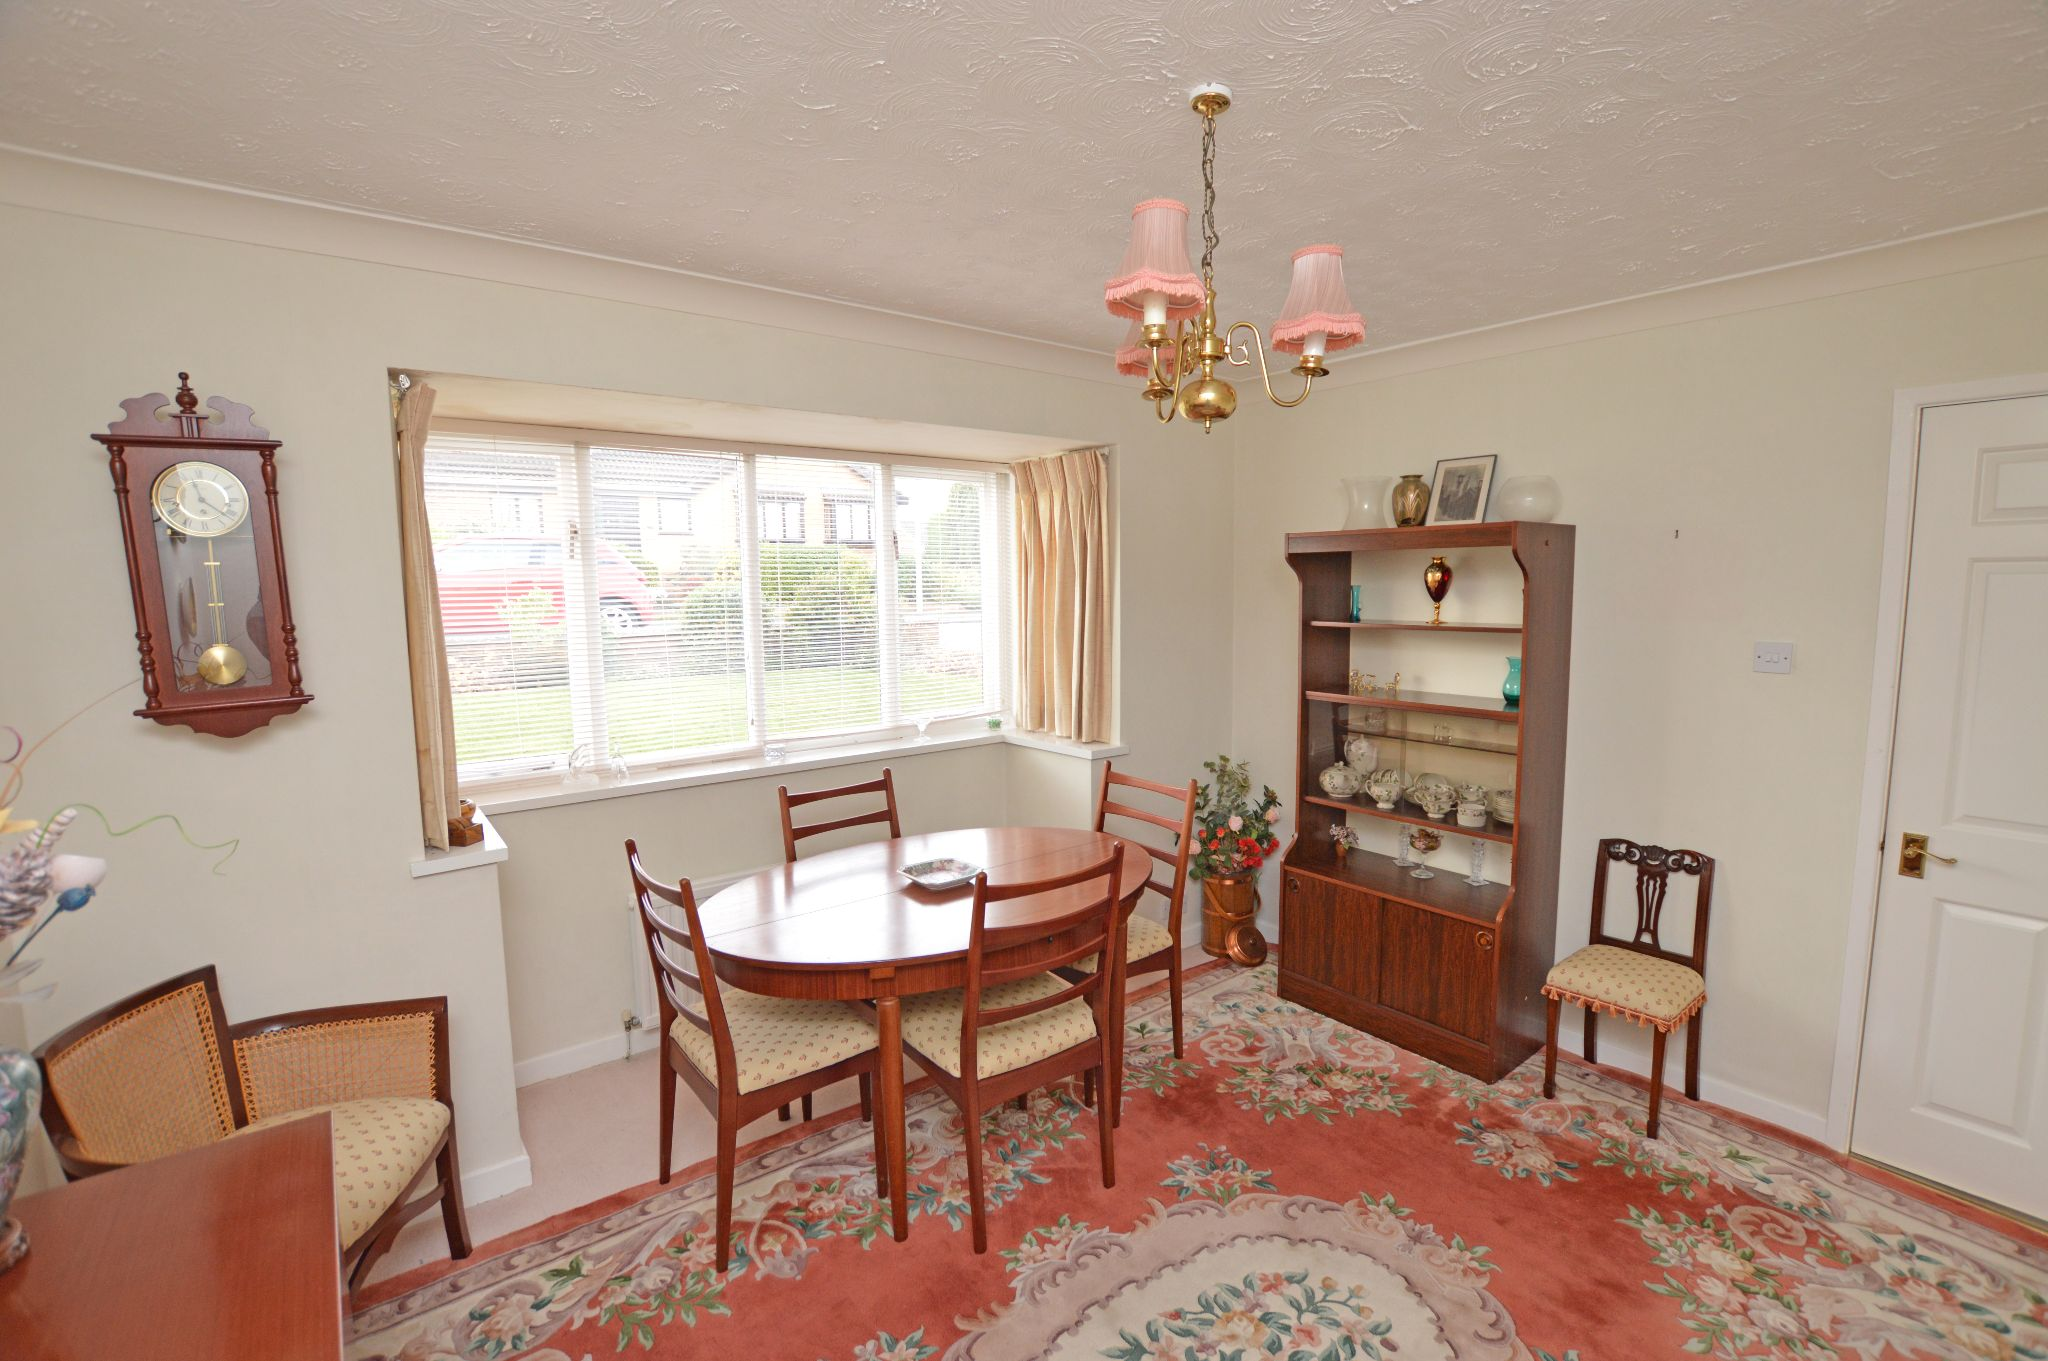 4 bedroom detached house For Sale in Abergele - Dining Room View 2